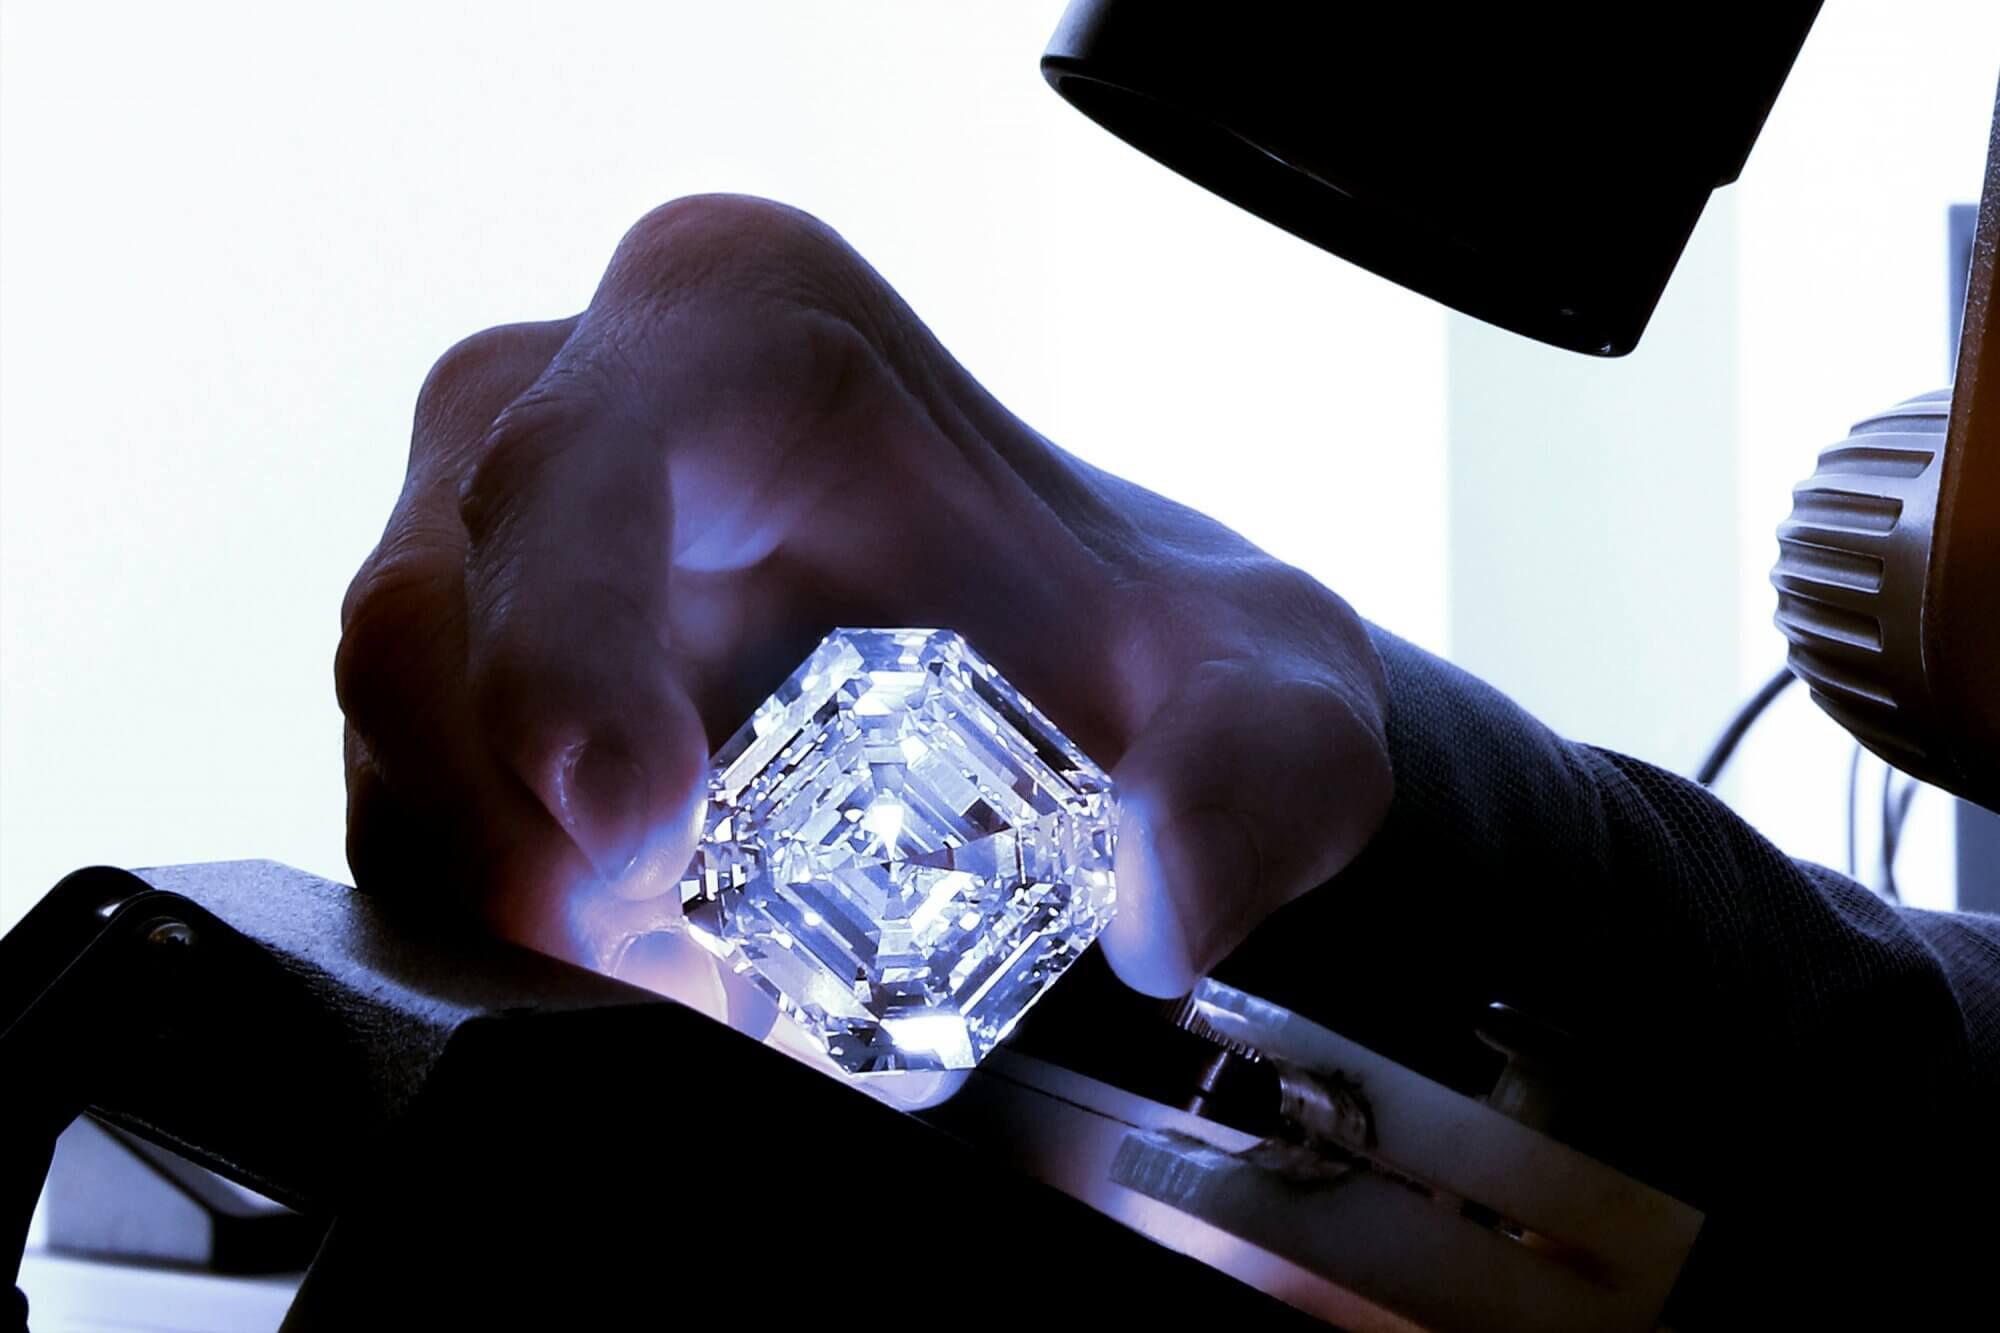 A Graff team member examining the Graff Lesedi La Rona Square Emerald Cut Diamond